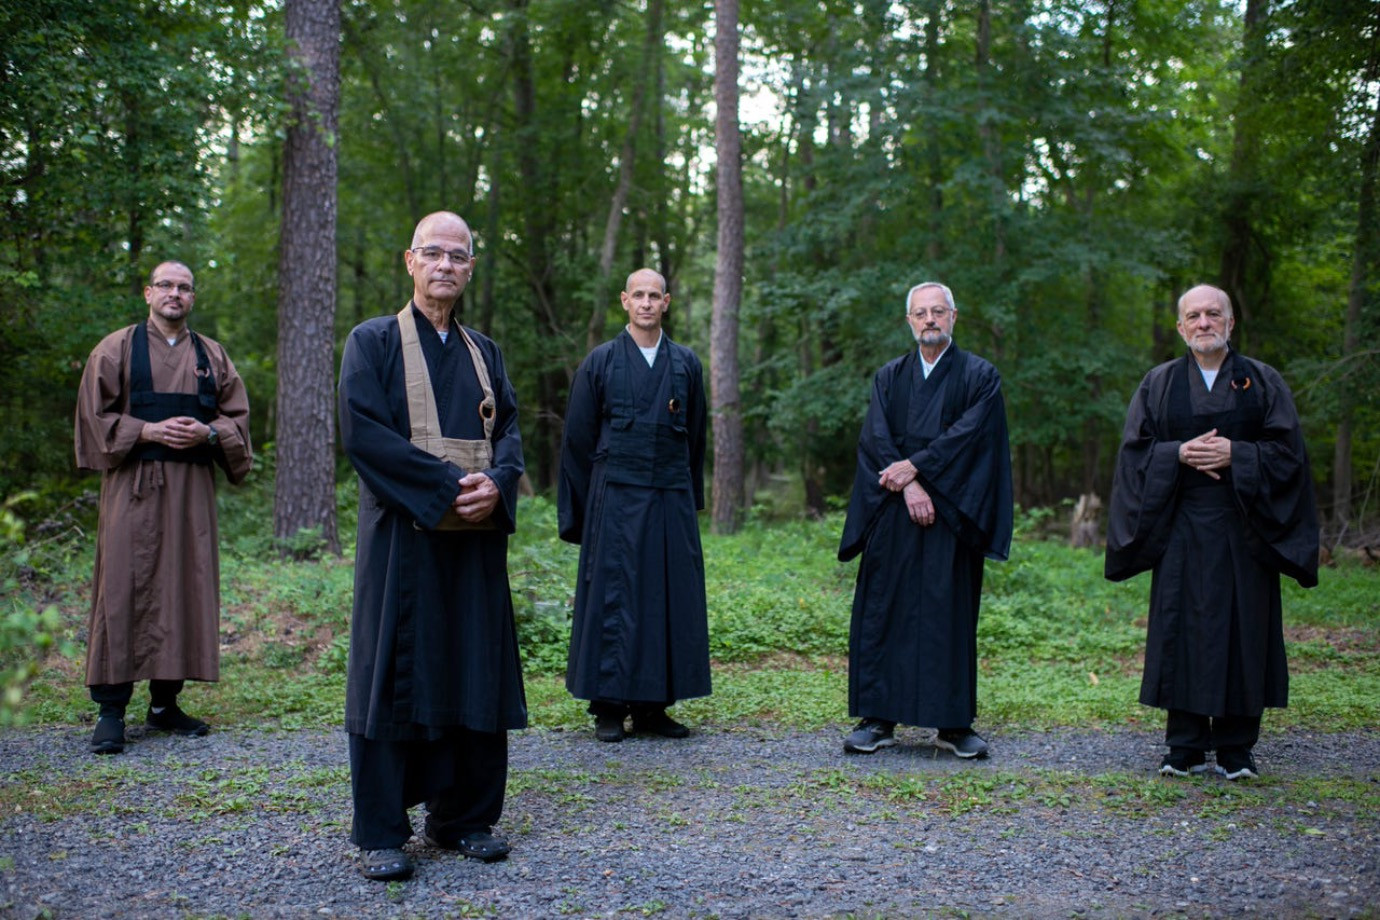 The Monks of Pine Wind